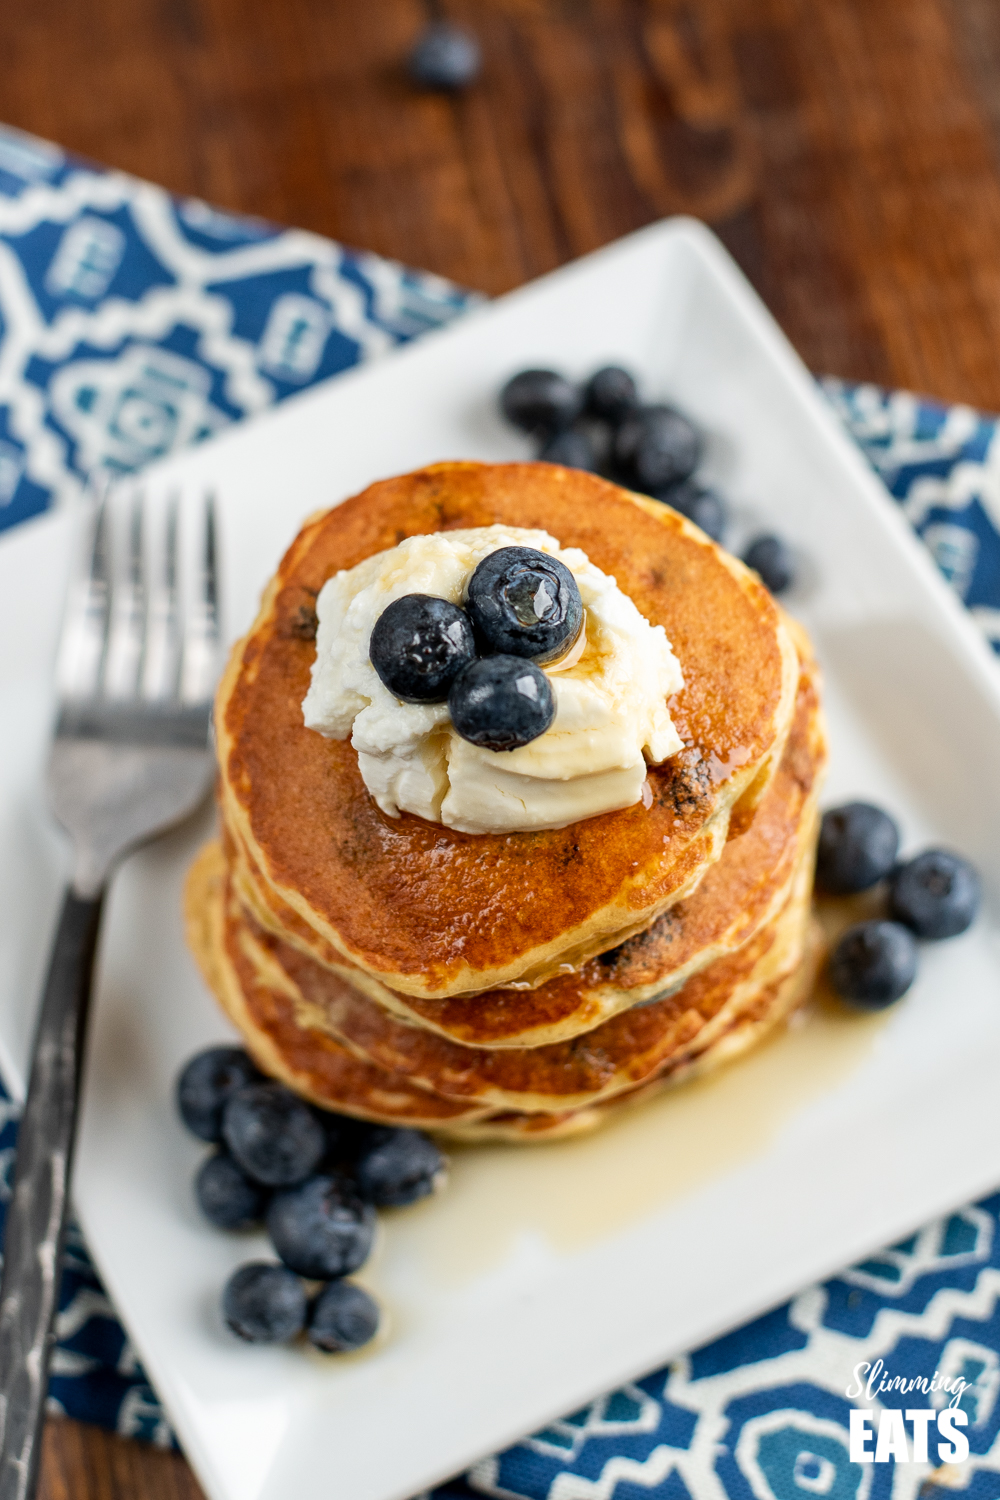 over the top view of lemon blueberry oat pancakes on a white plate with blueberries and quark